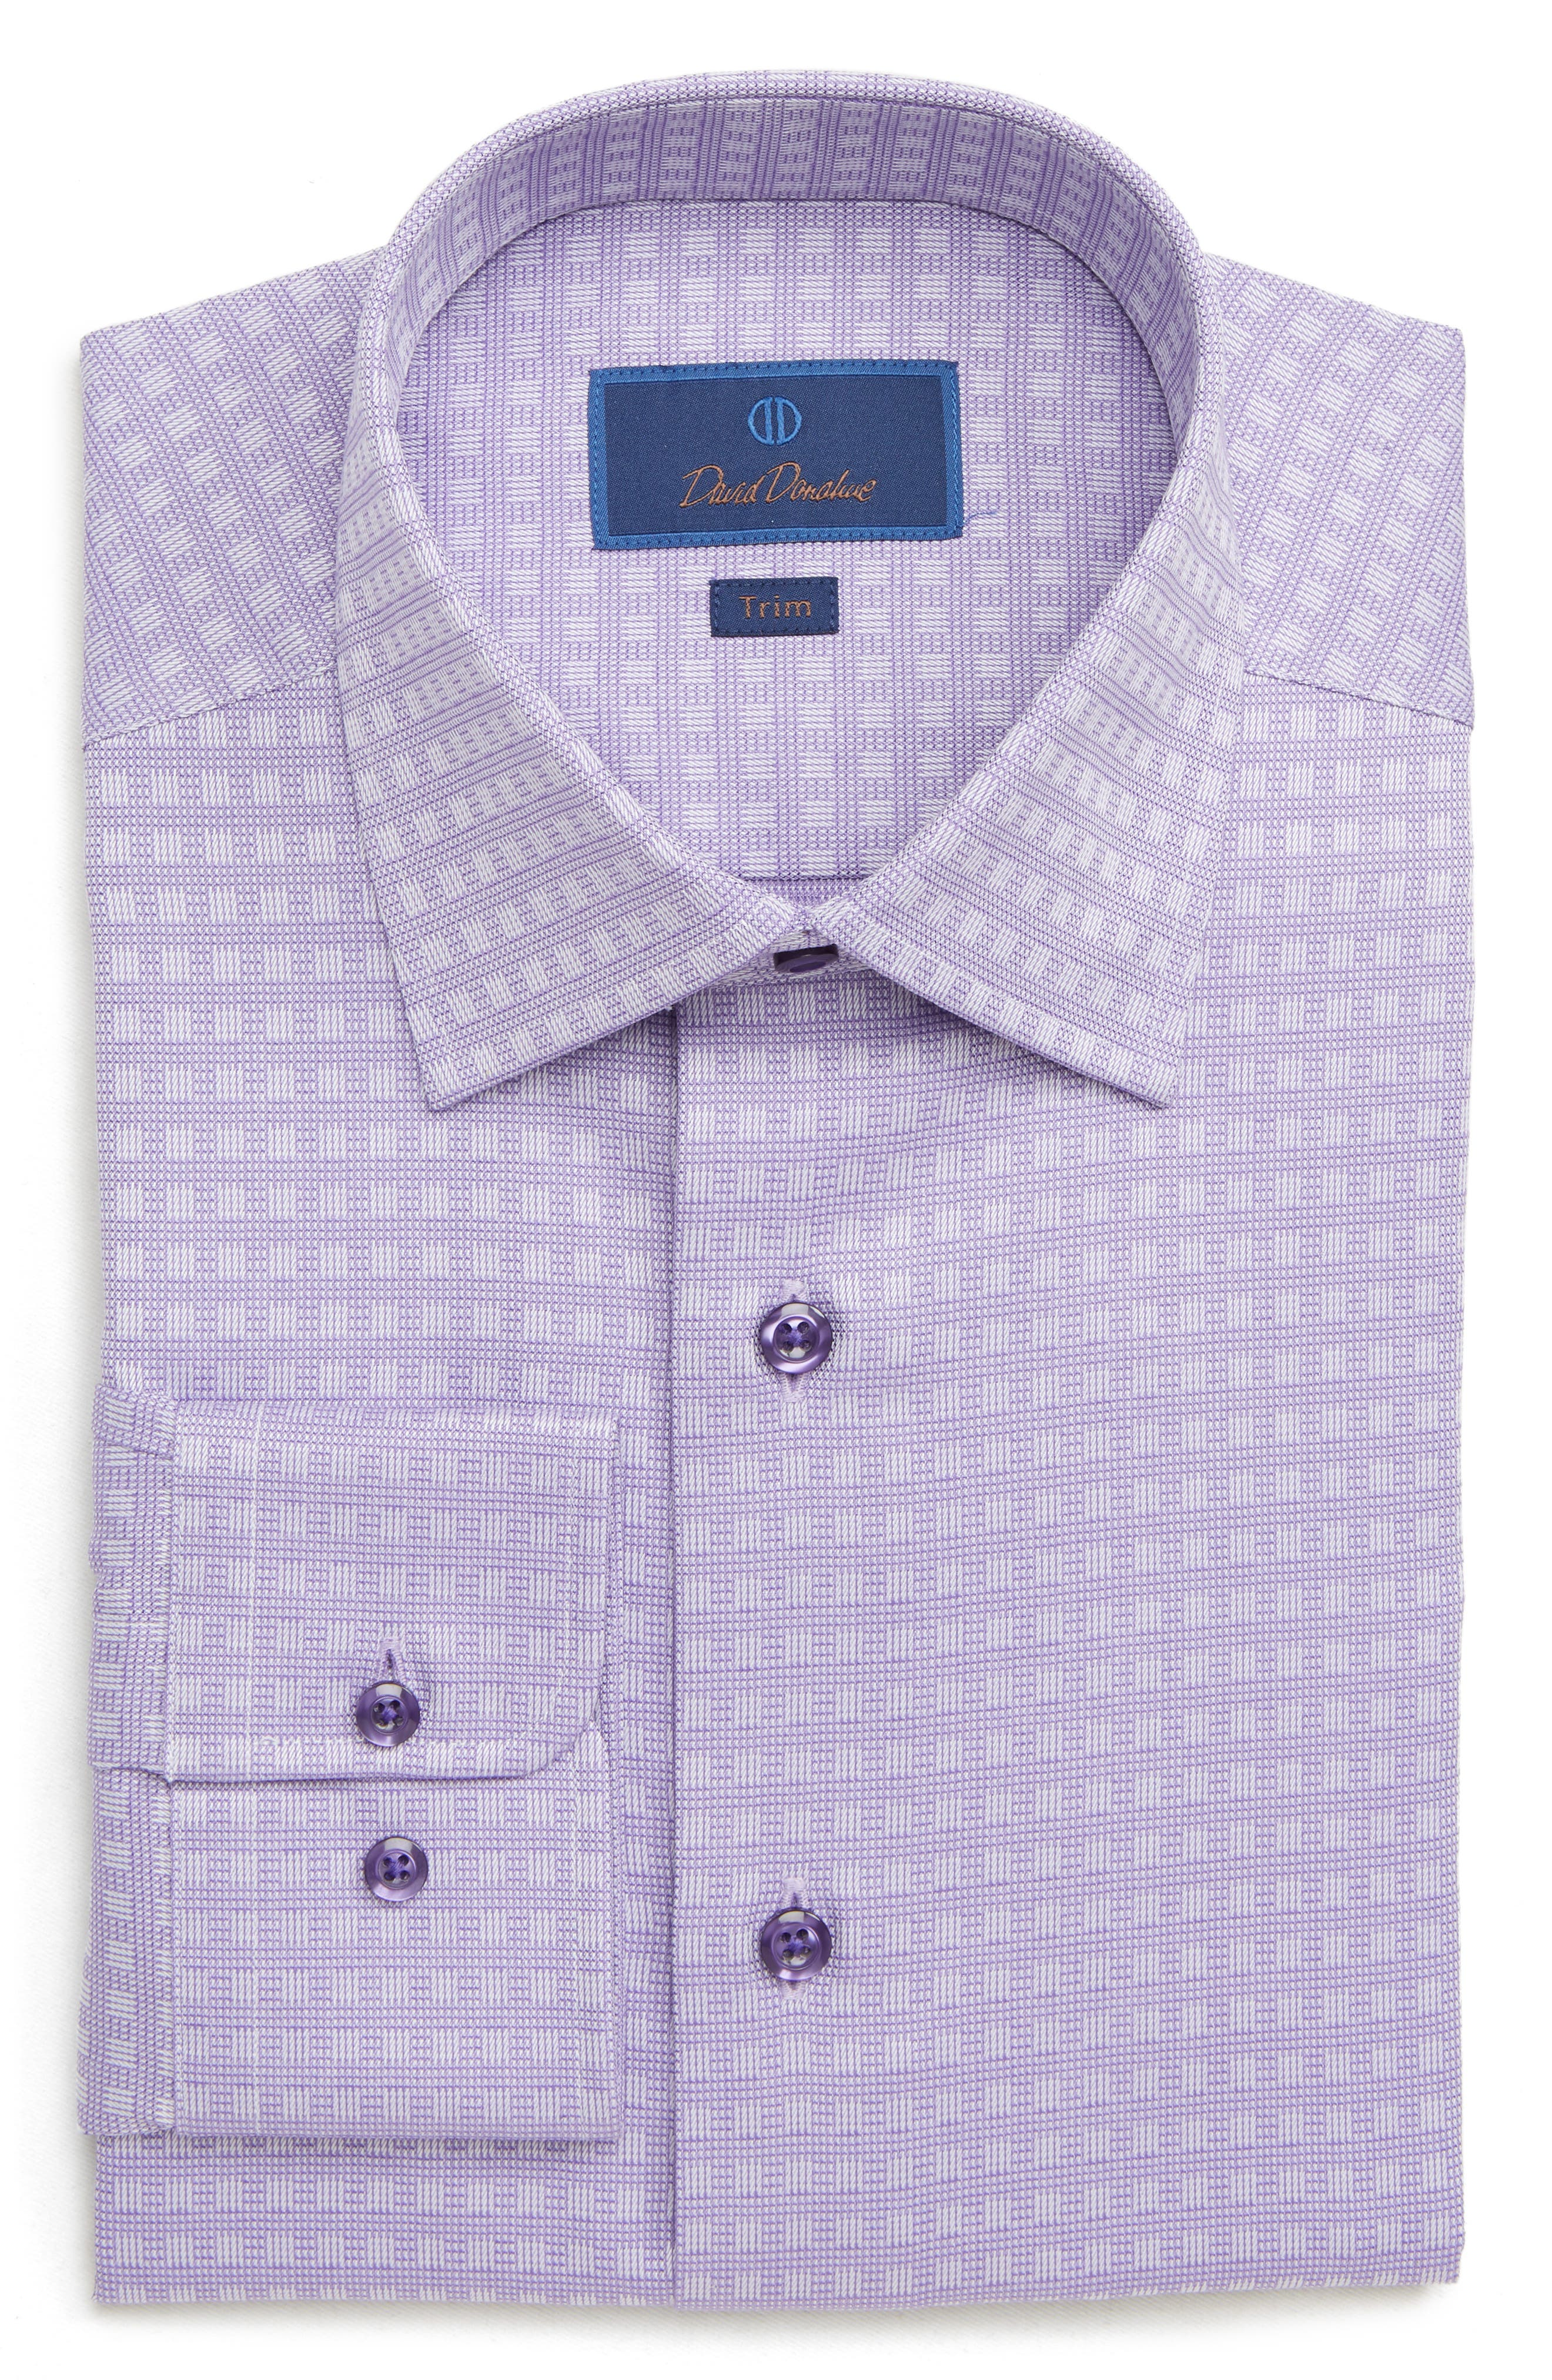 Trim Fit Check Dress Shirt,                             Main thumbnail 1, color,                             534